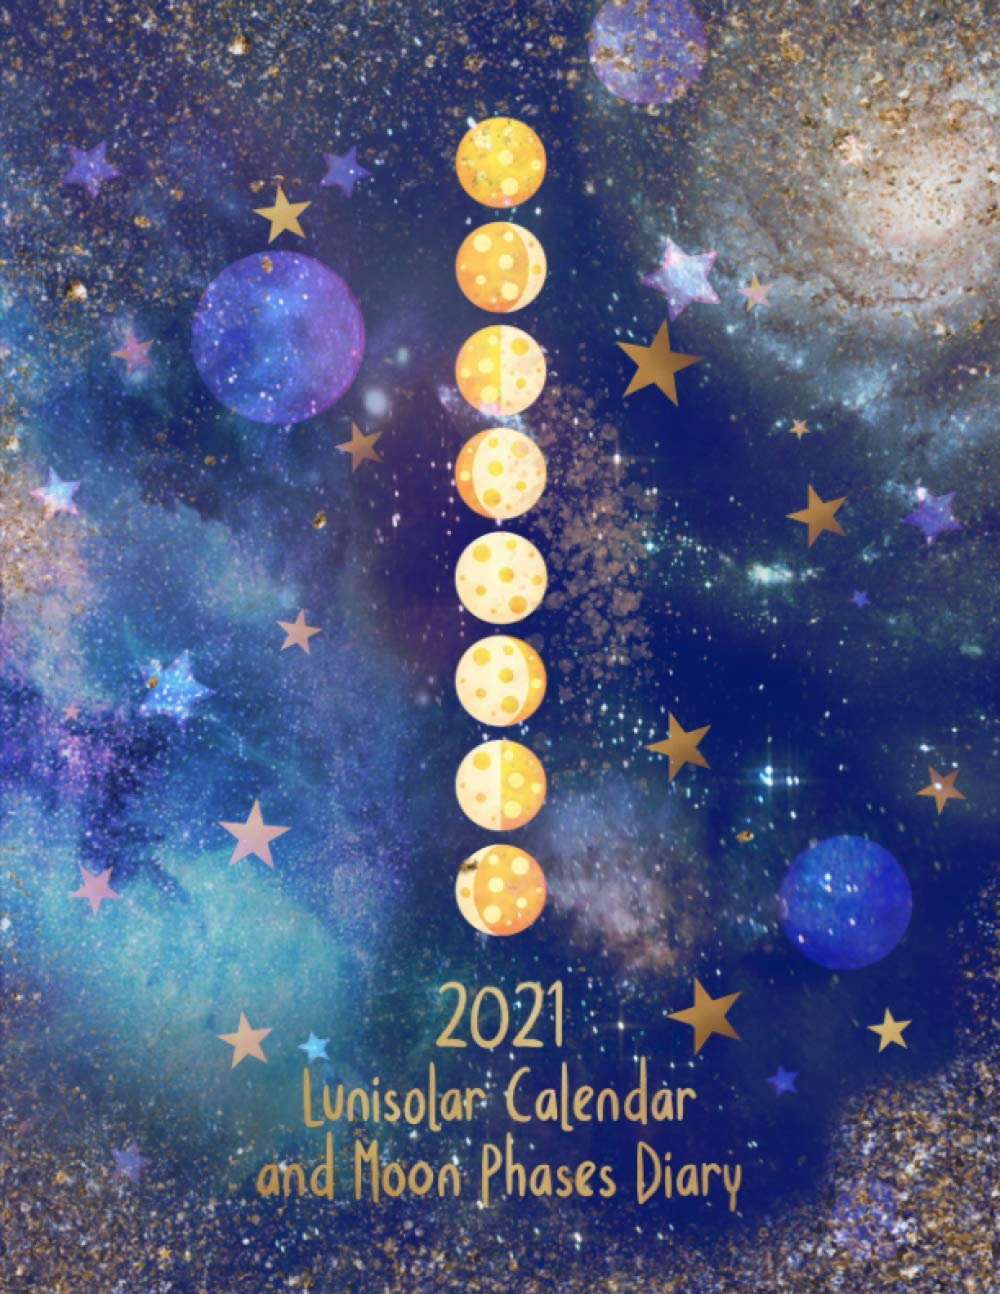 2021 Lunisolar Calendar and Moon Phases Diary: Includes Lunar